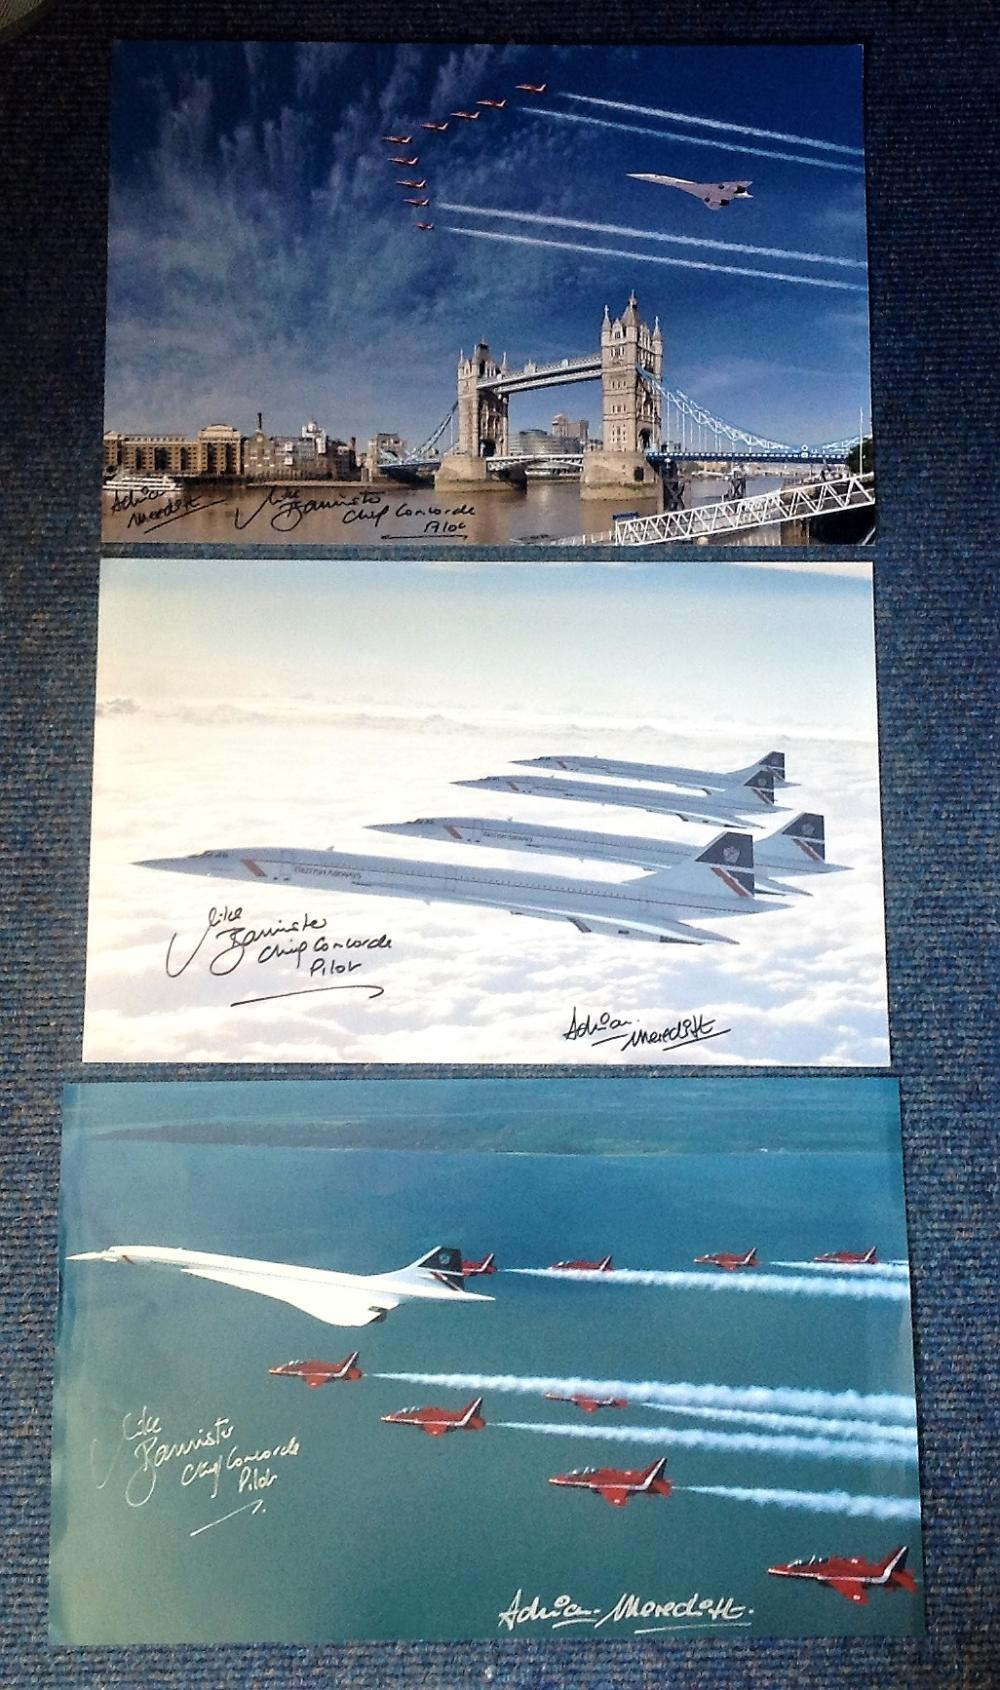 Mike Bannister and Adrian Meredith signed Concorde 16x12 photo collection. Contains 3 photos. Slight